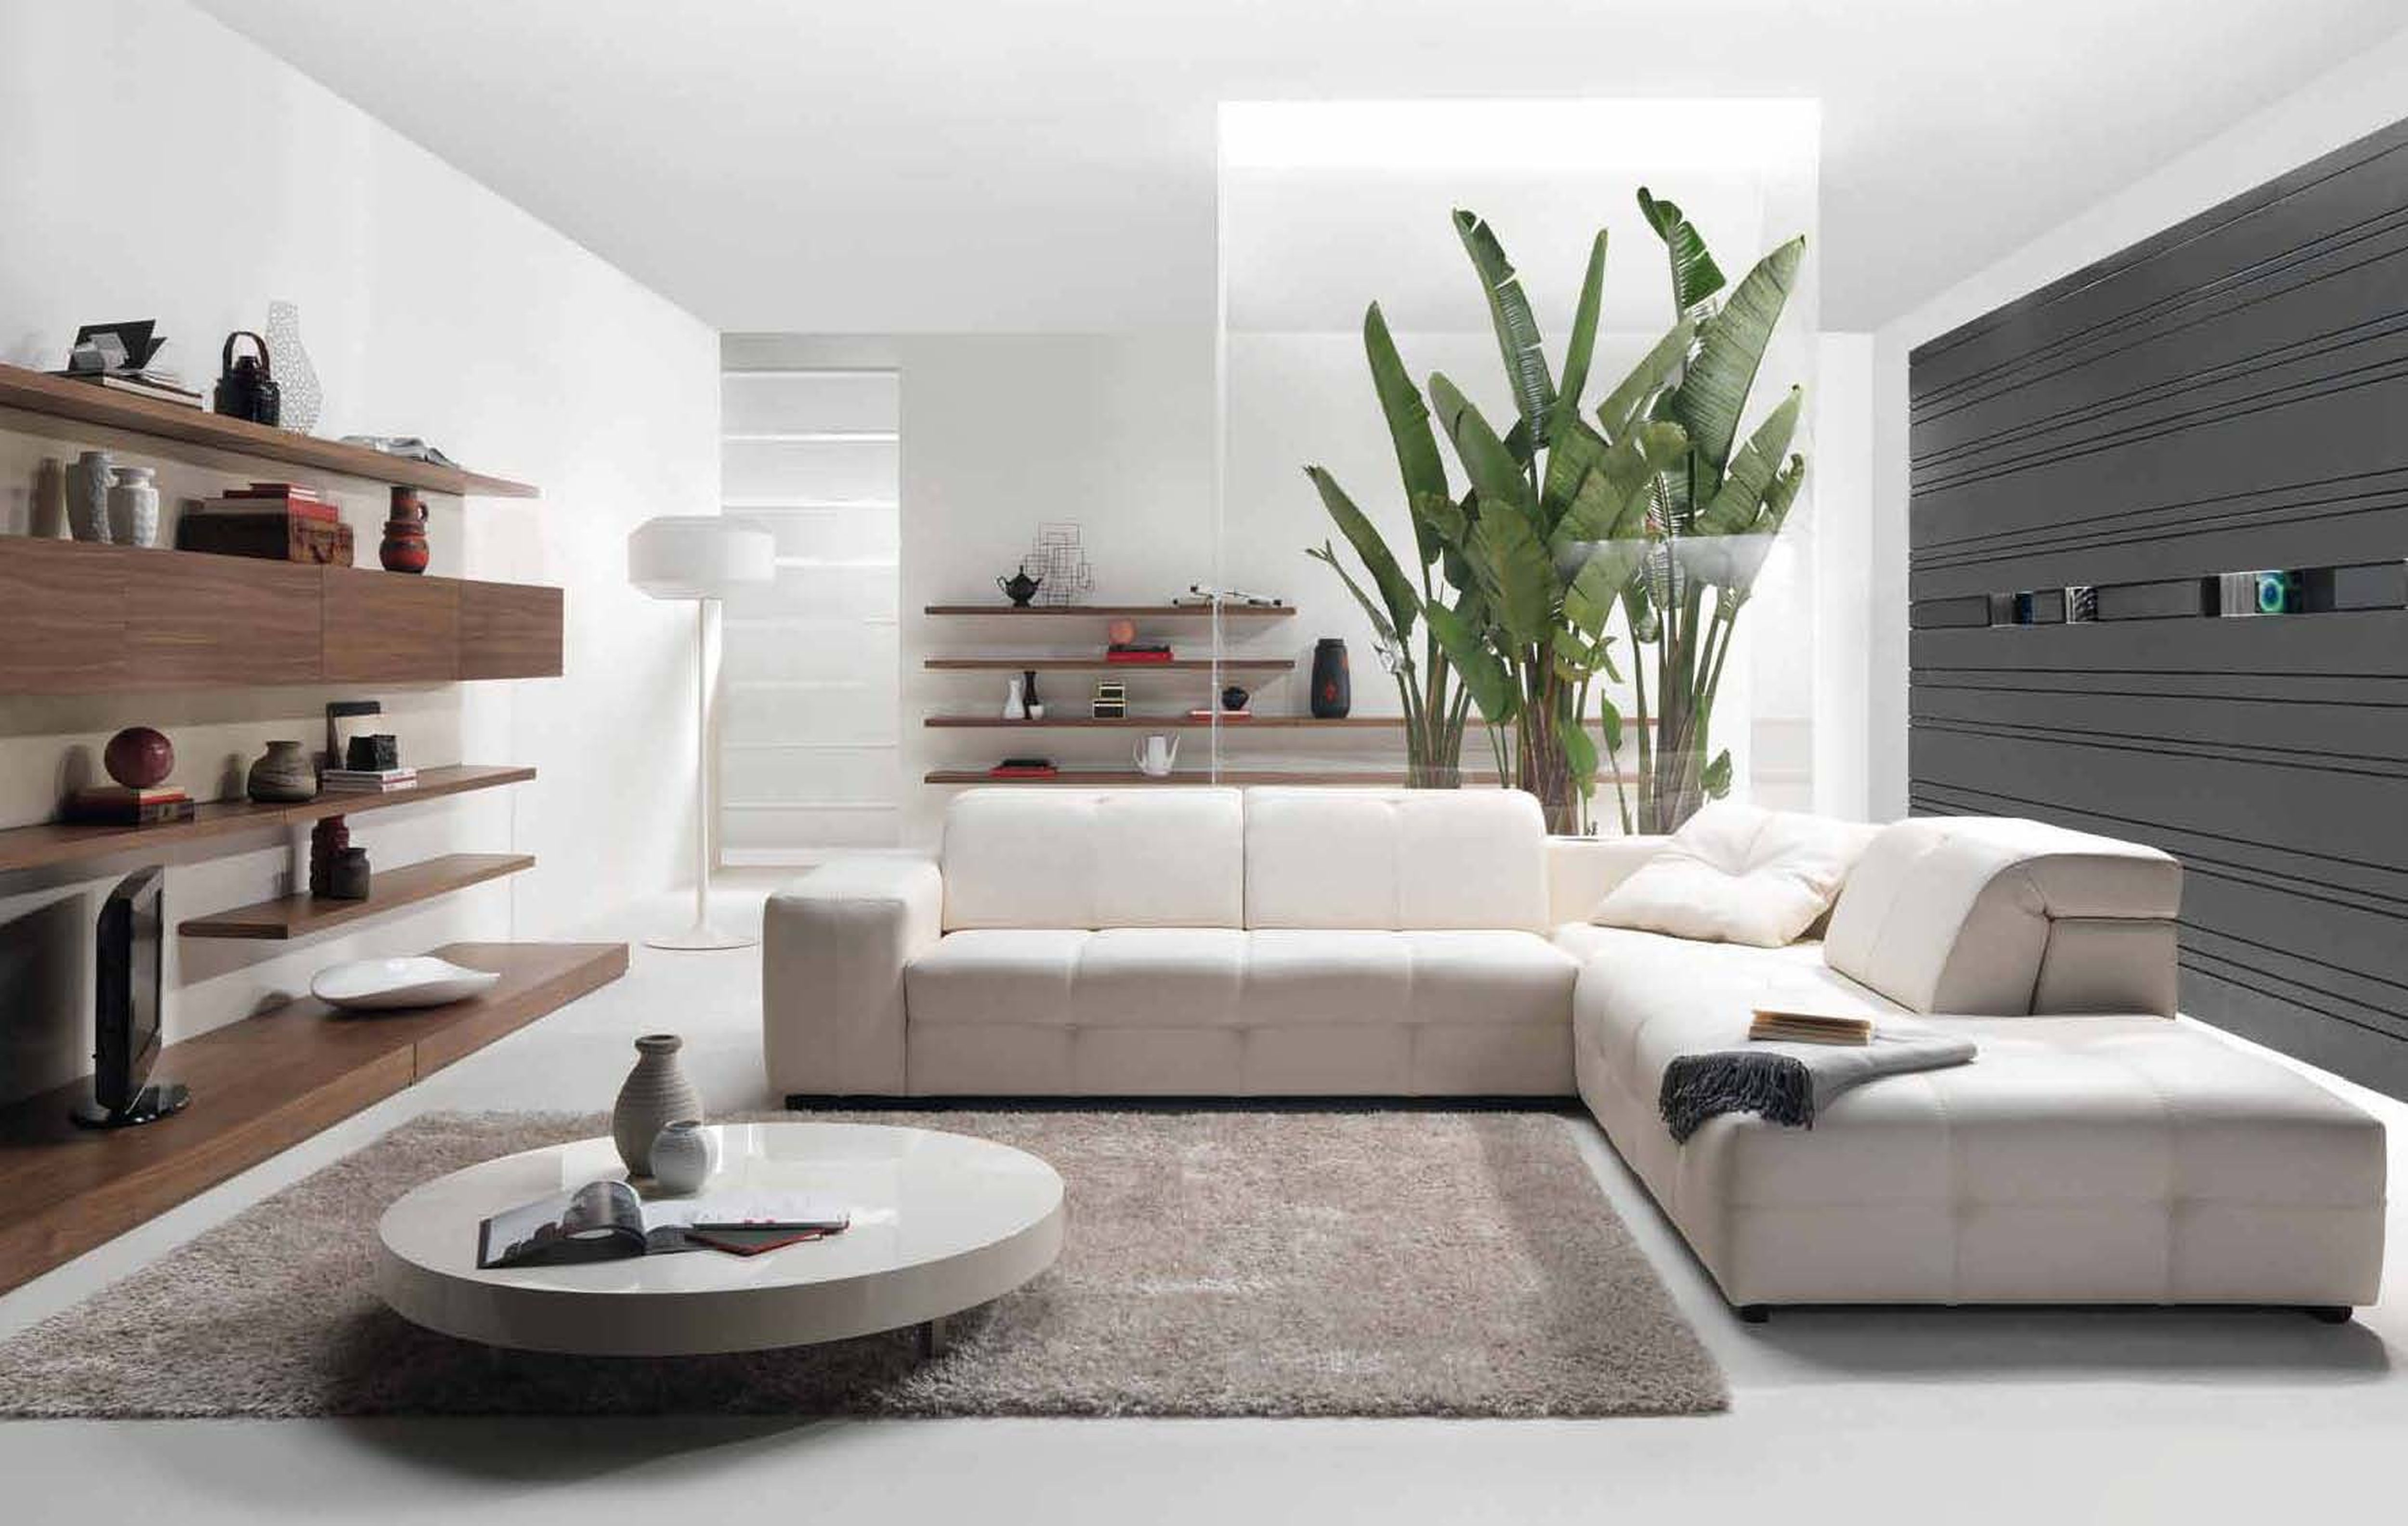 Stylish Innovative Living Room Japanese Home Decor Design Ideas And On Modern modern home decor